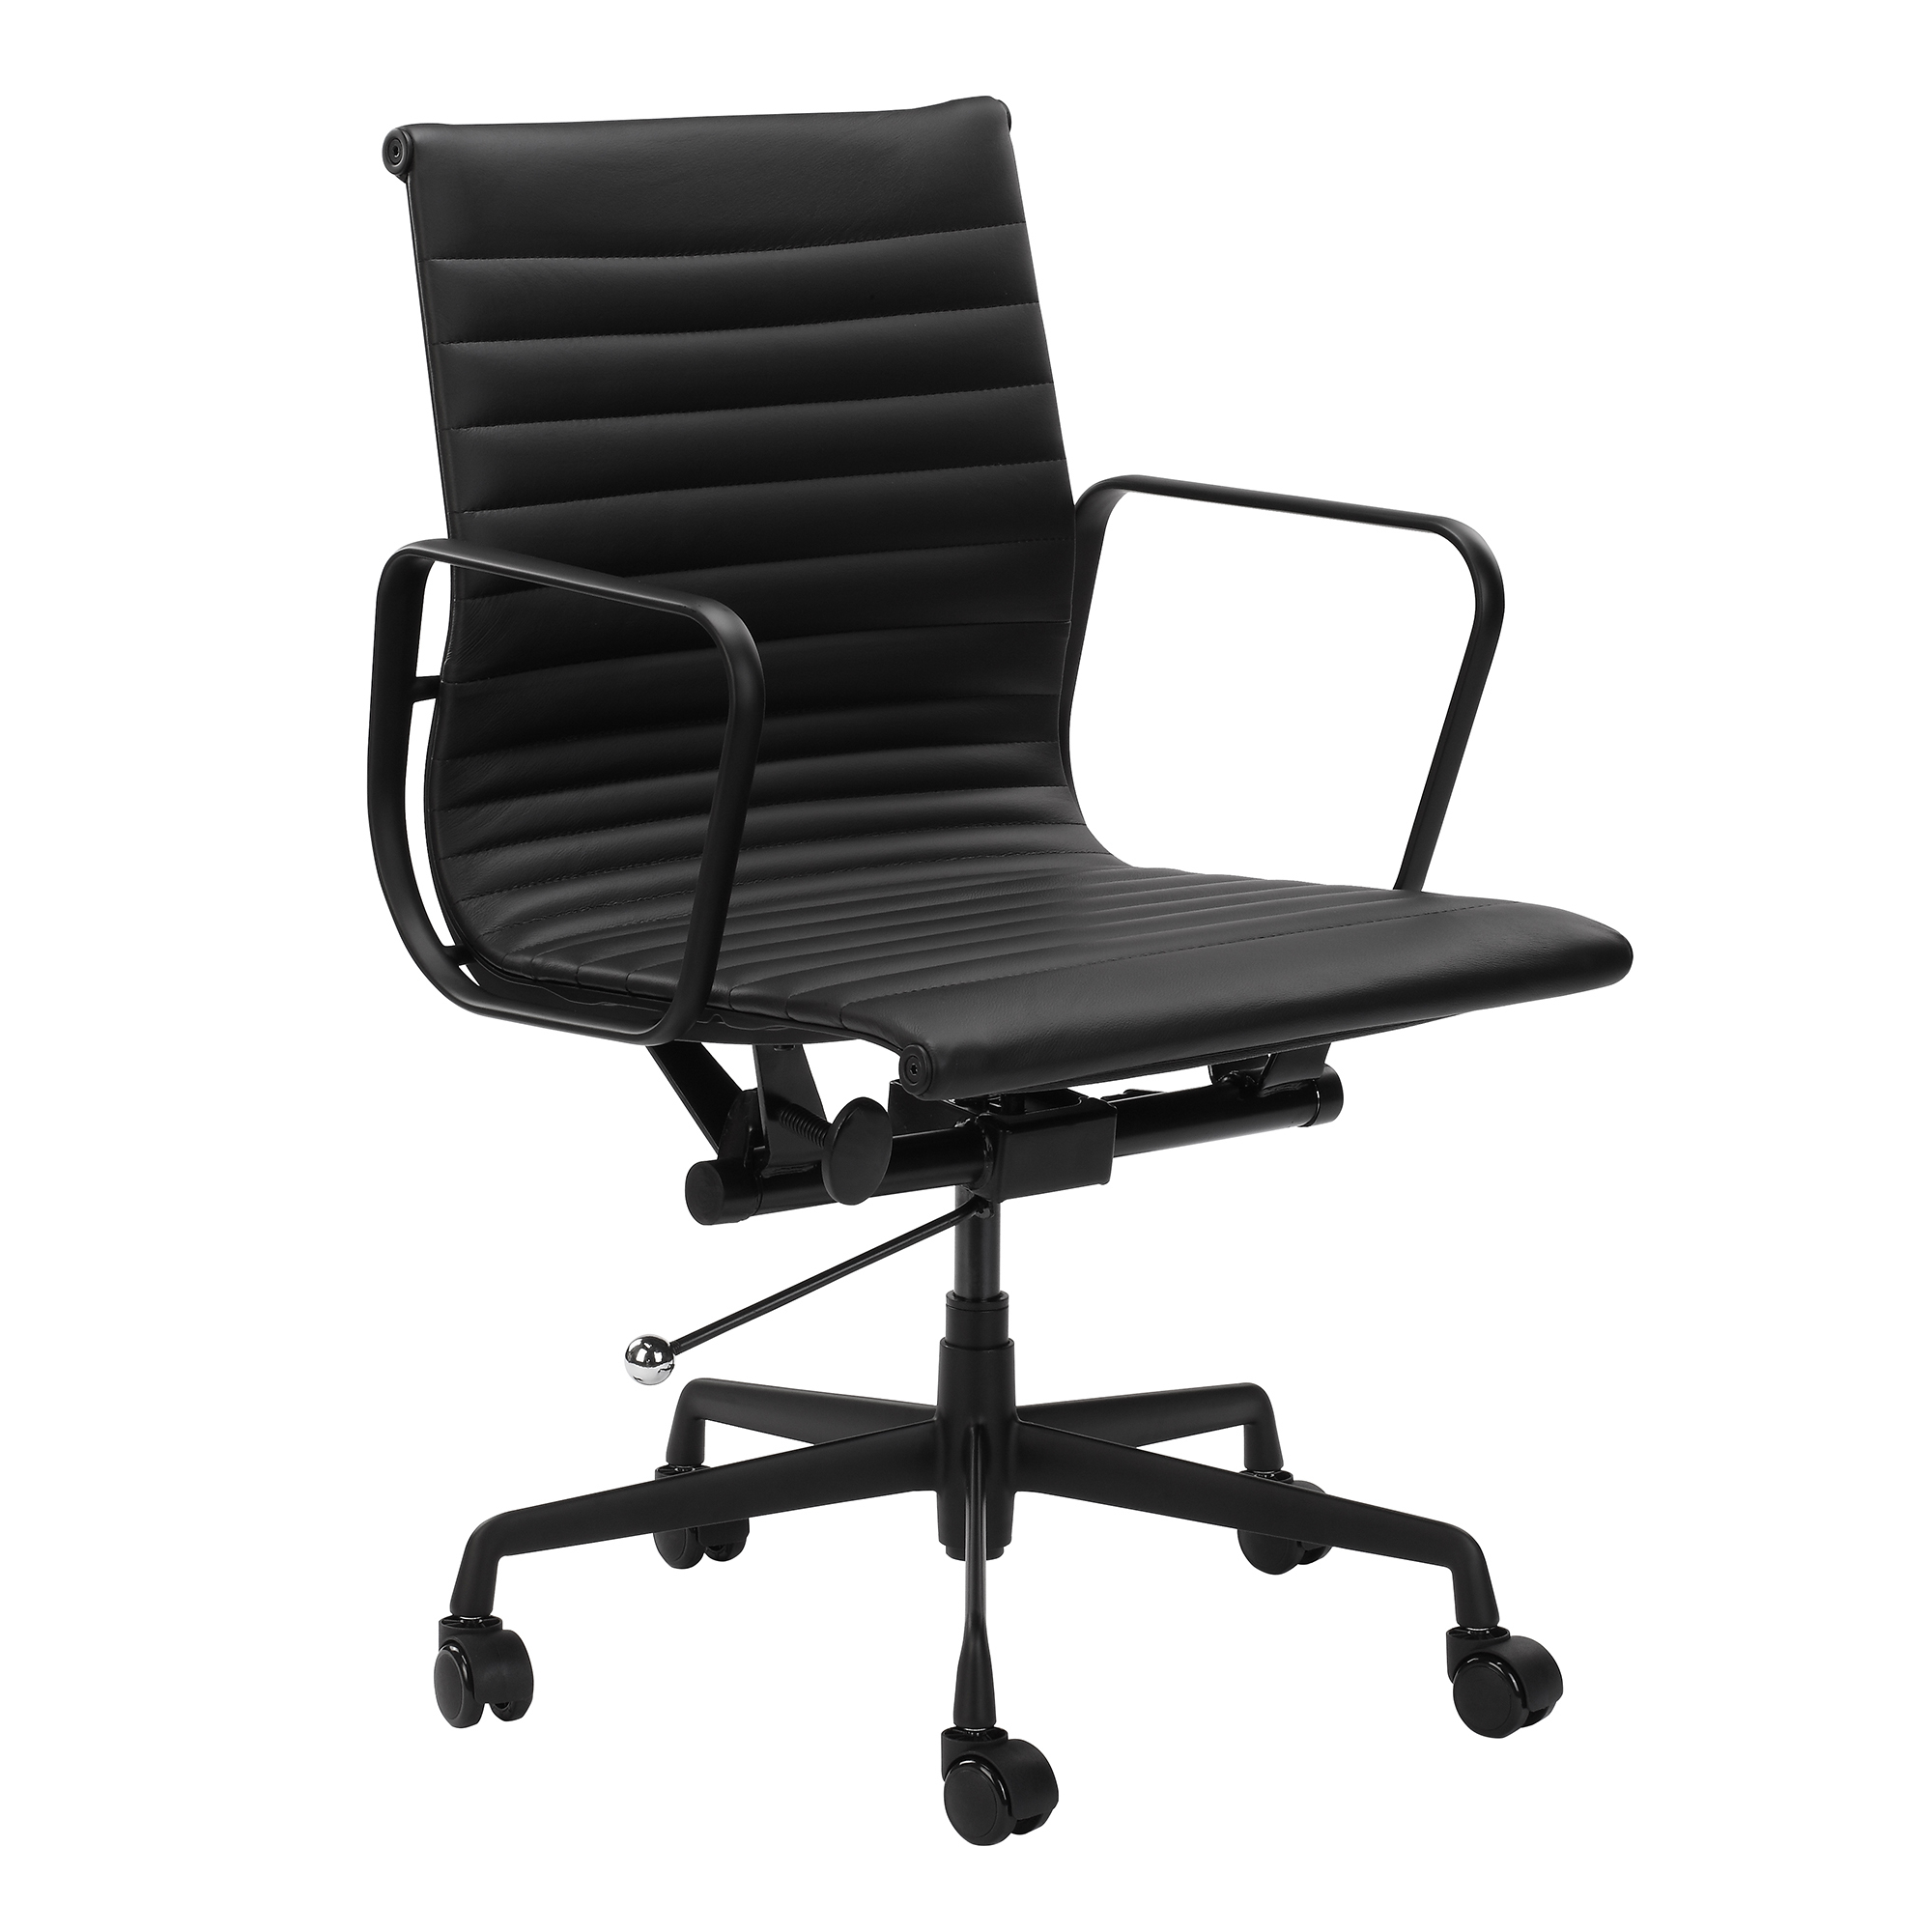 Eames Desk Chair Deluxe Leather Eames Replica Management Office Chair